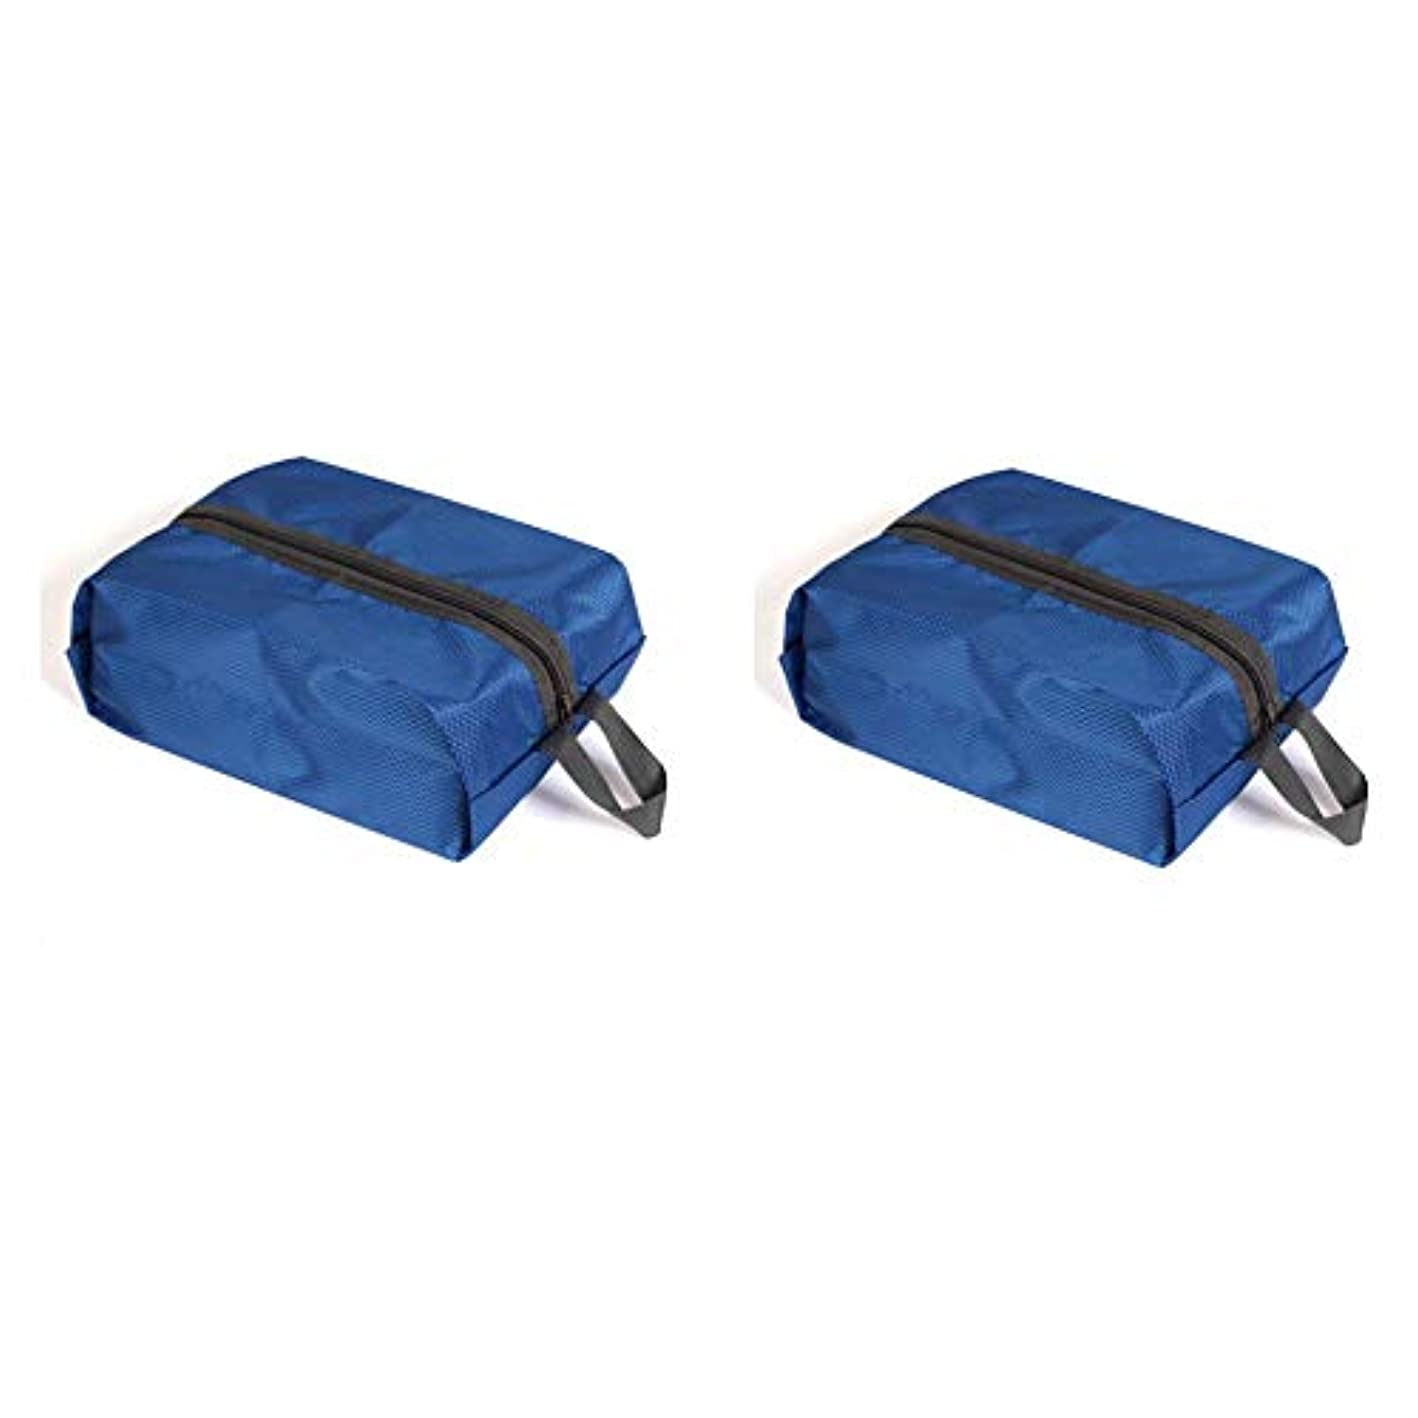 DADA Portable Travel Shoe Bags with Zipper,Dust-Proof Waterproof Shoe Organizer Space Saving Storage Bags, Pack of 2